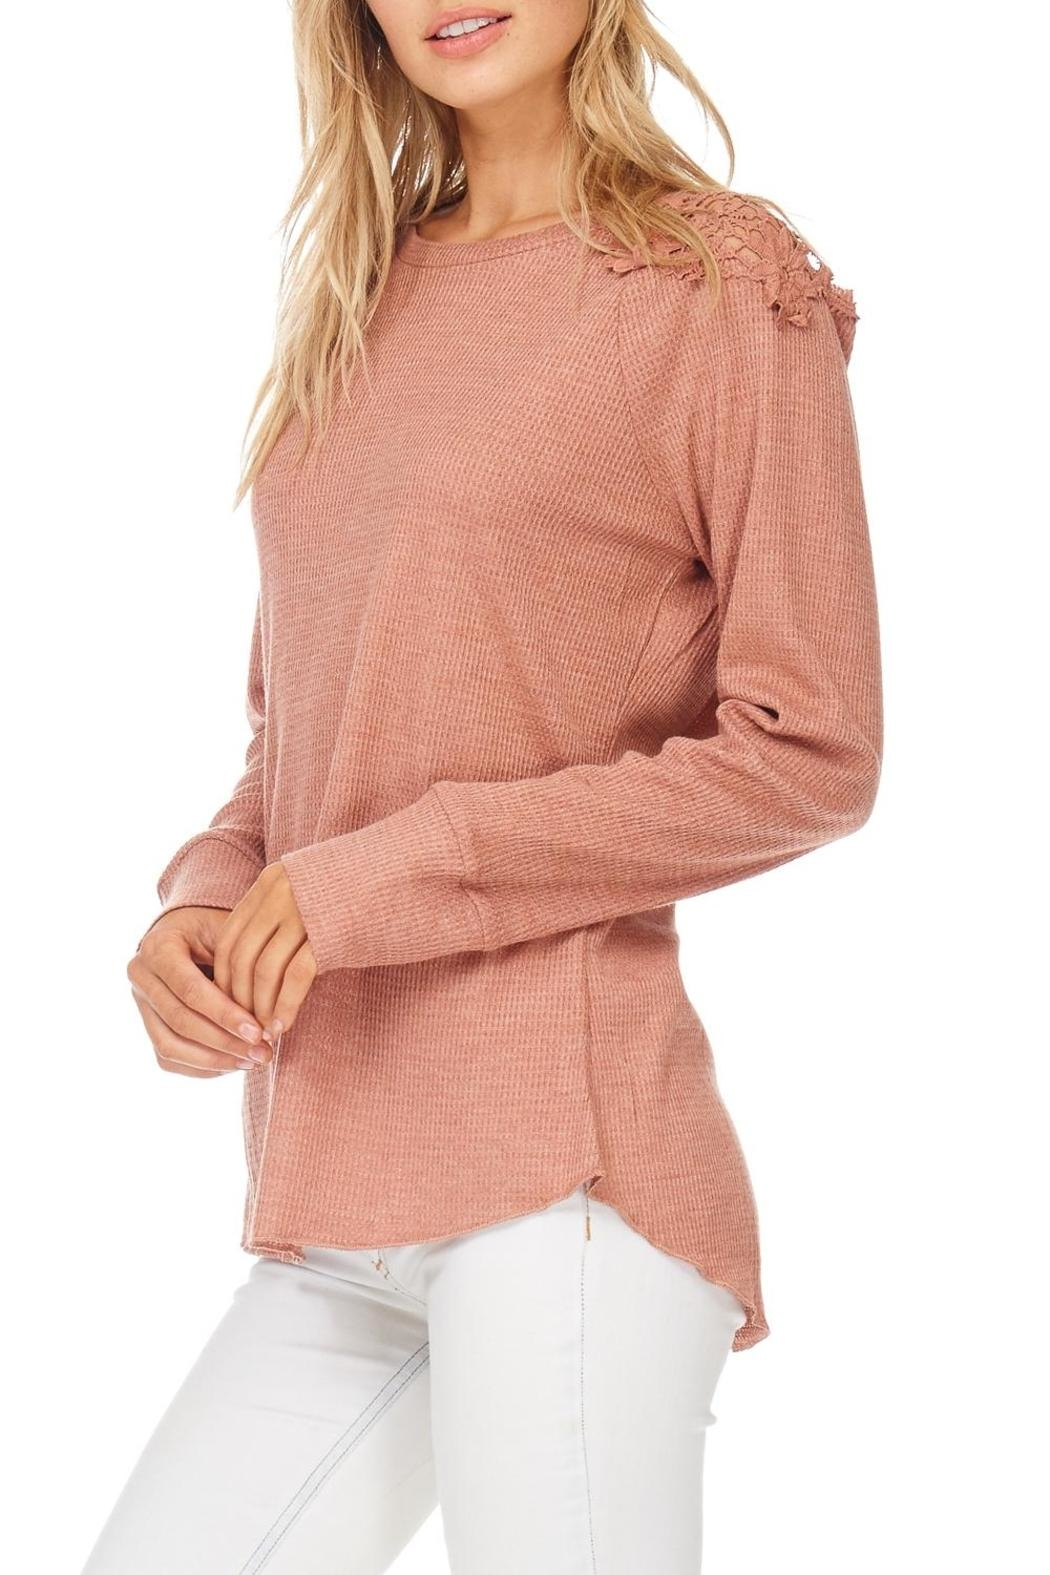 Hem & Thread Blush Lace Shoulder Top - Main Image